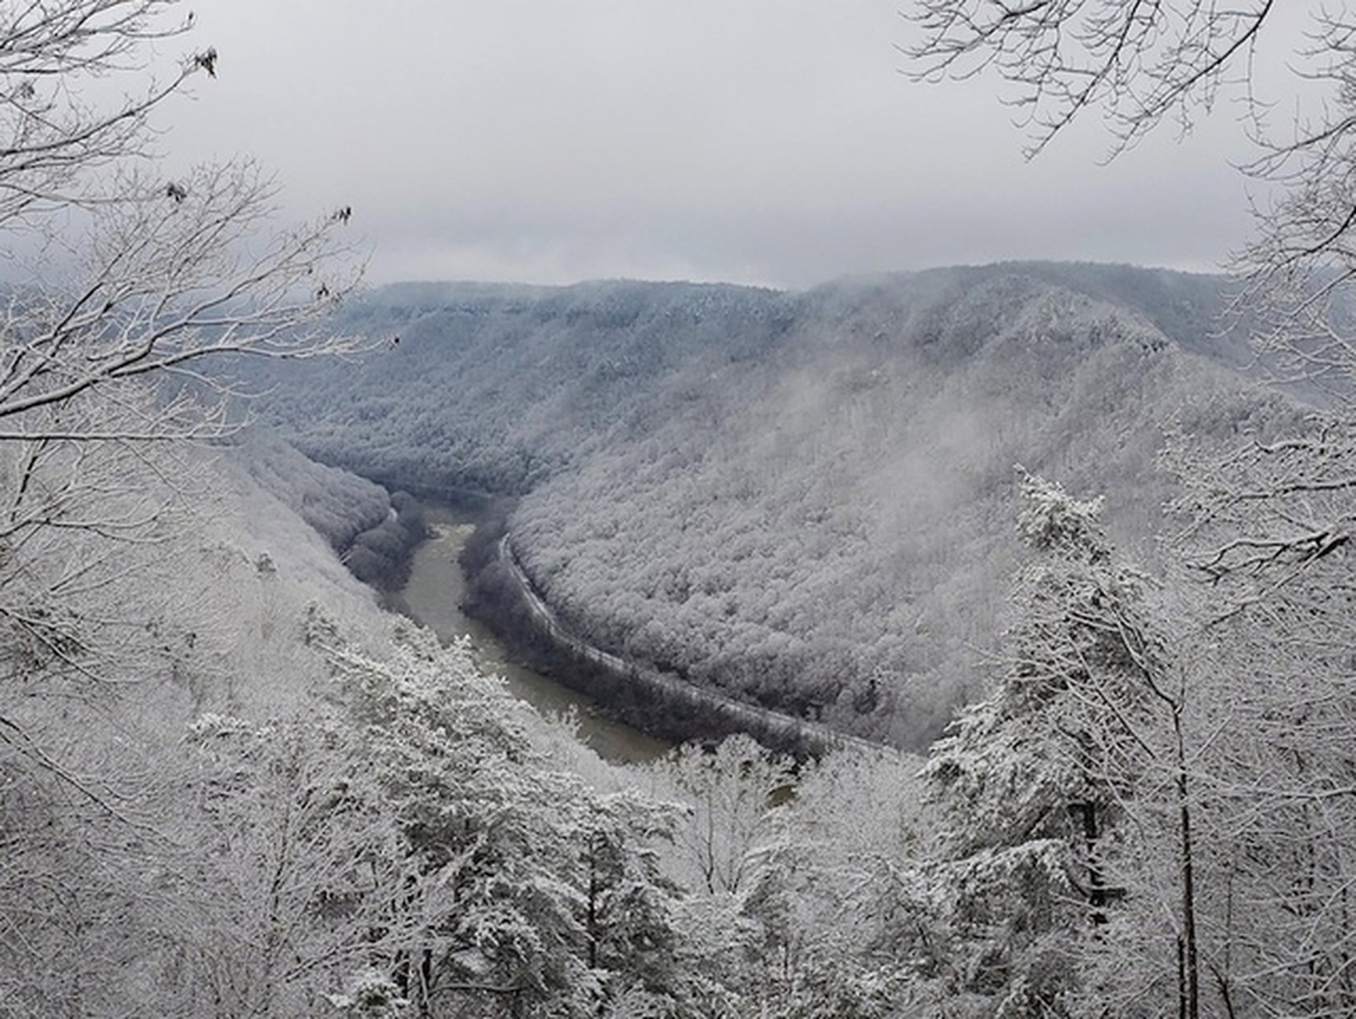 Wide scenic winter view into the New River Gorge also shows rapids below a bend and the road and railroad tracks cut into the wooded slopes on opposite sides of the river